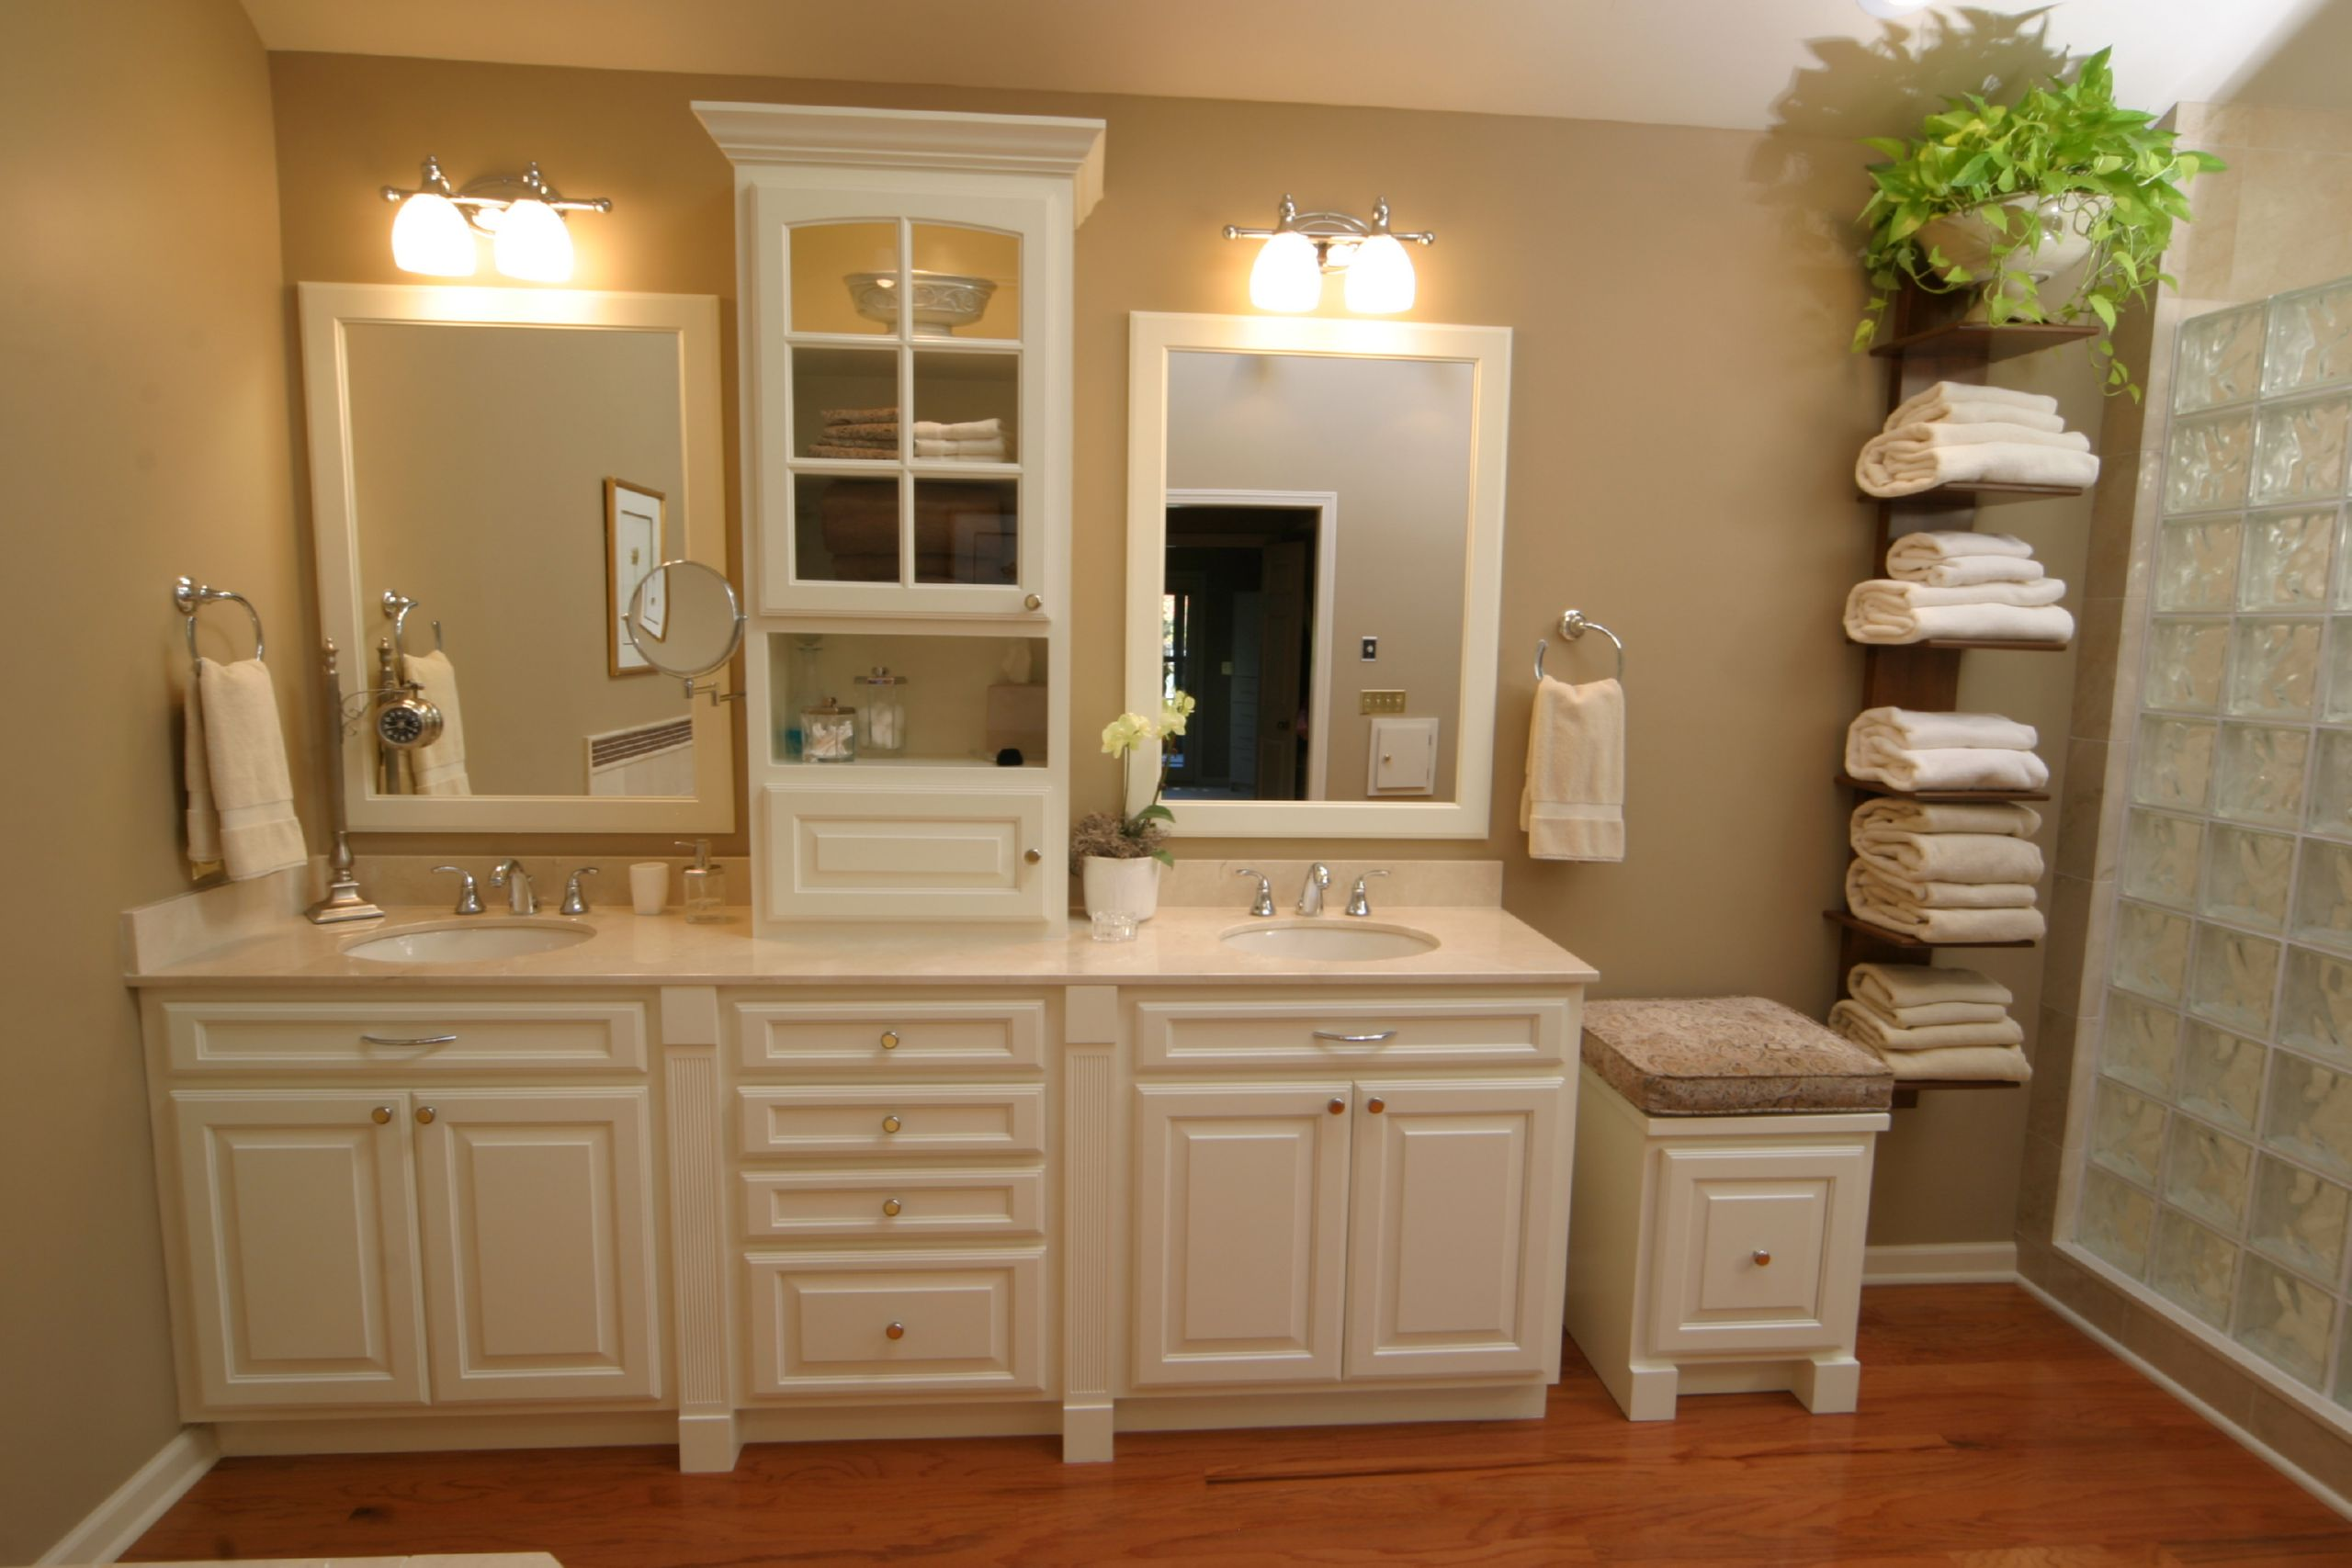 Bathroom Remodel Tips bathroom remodeling tips - njw construction